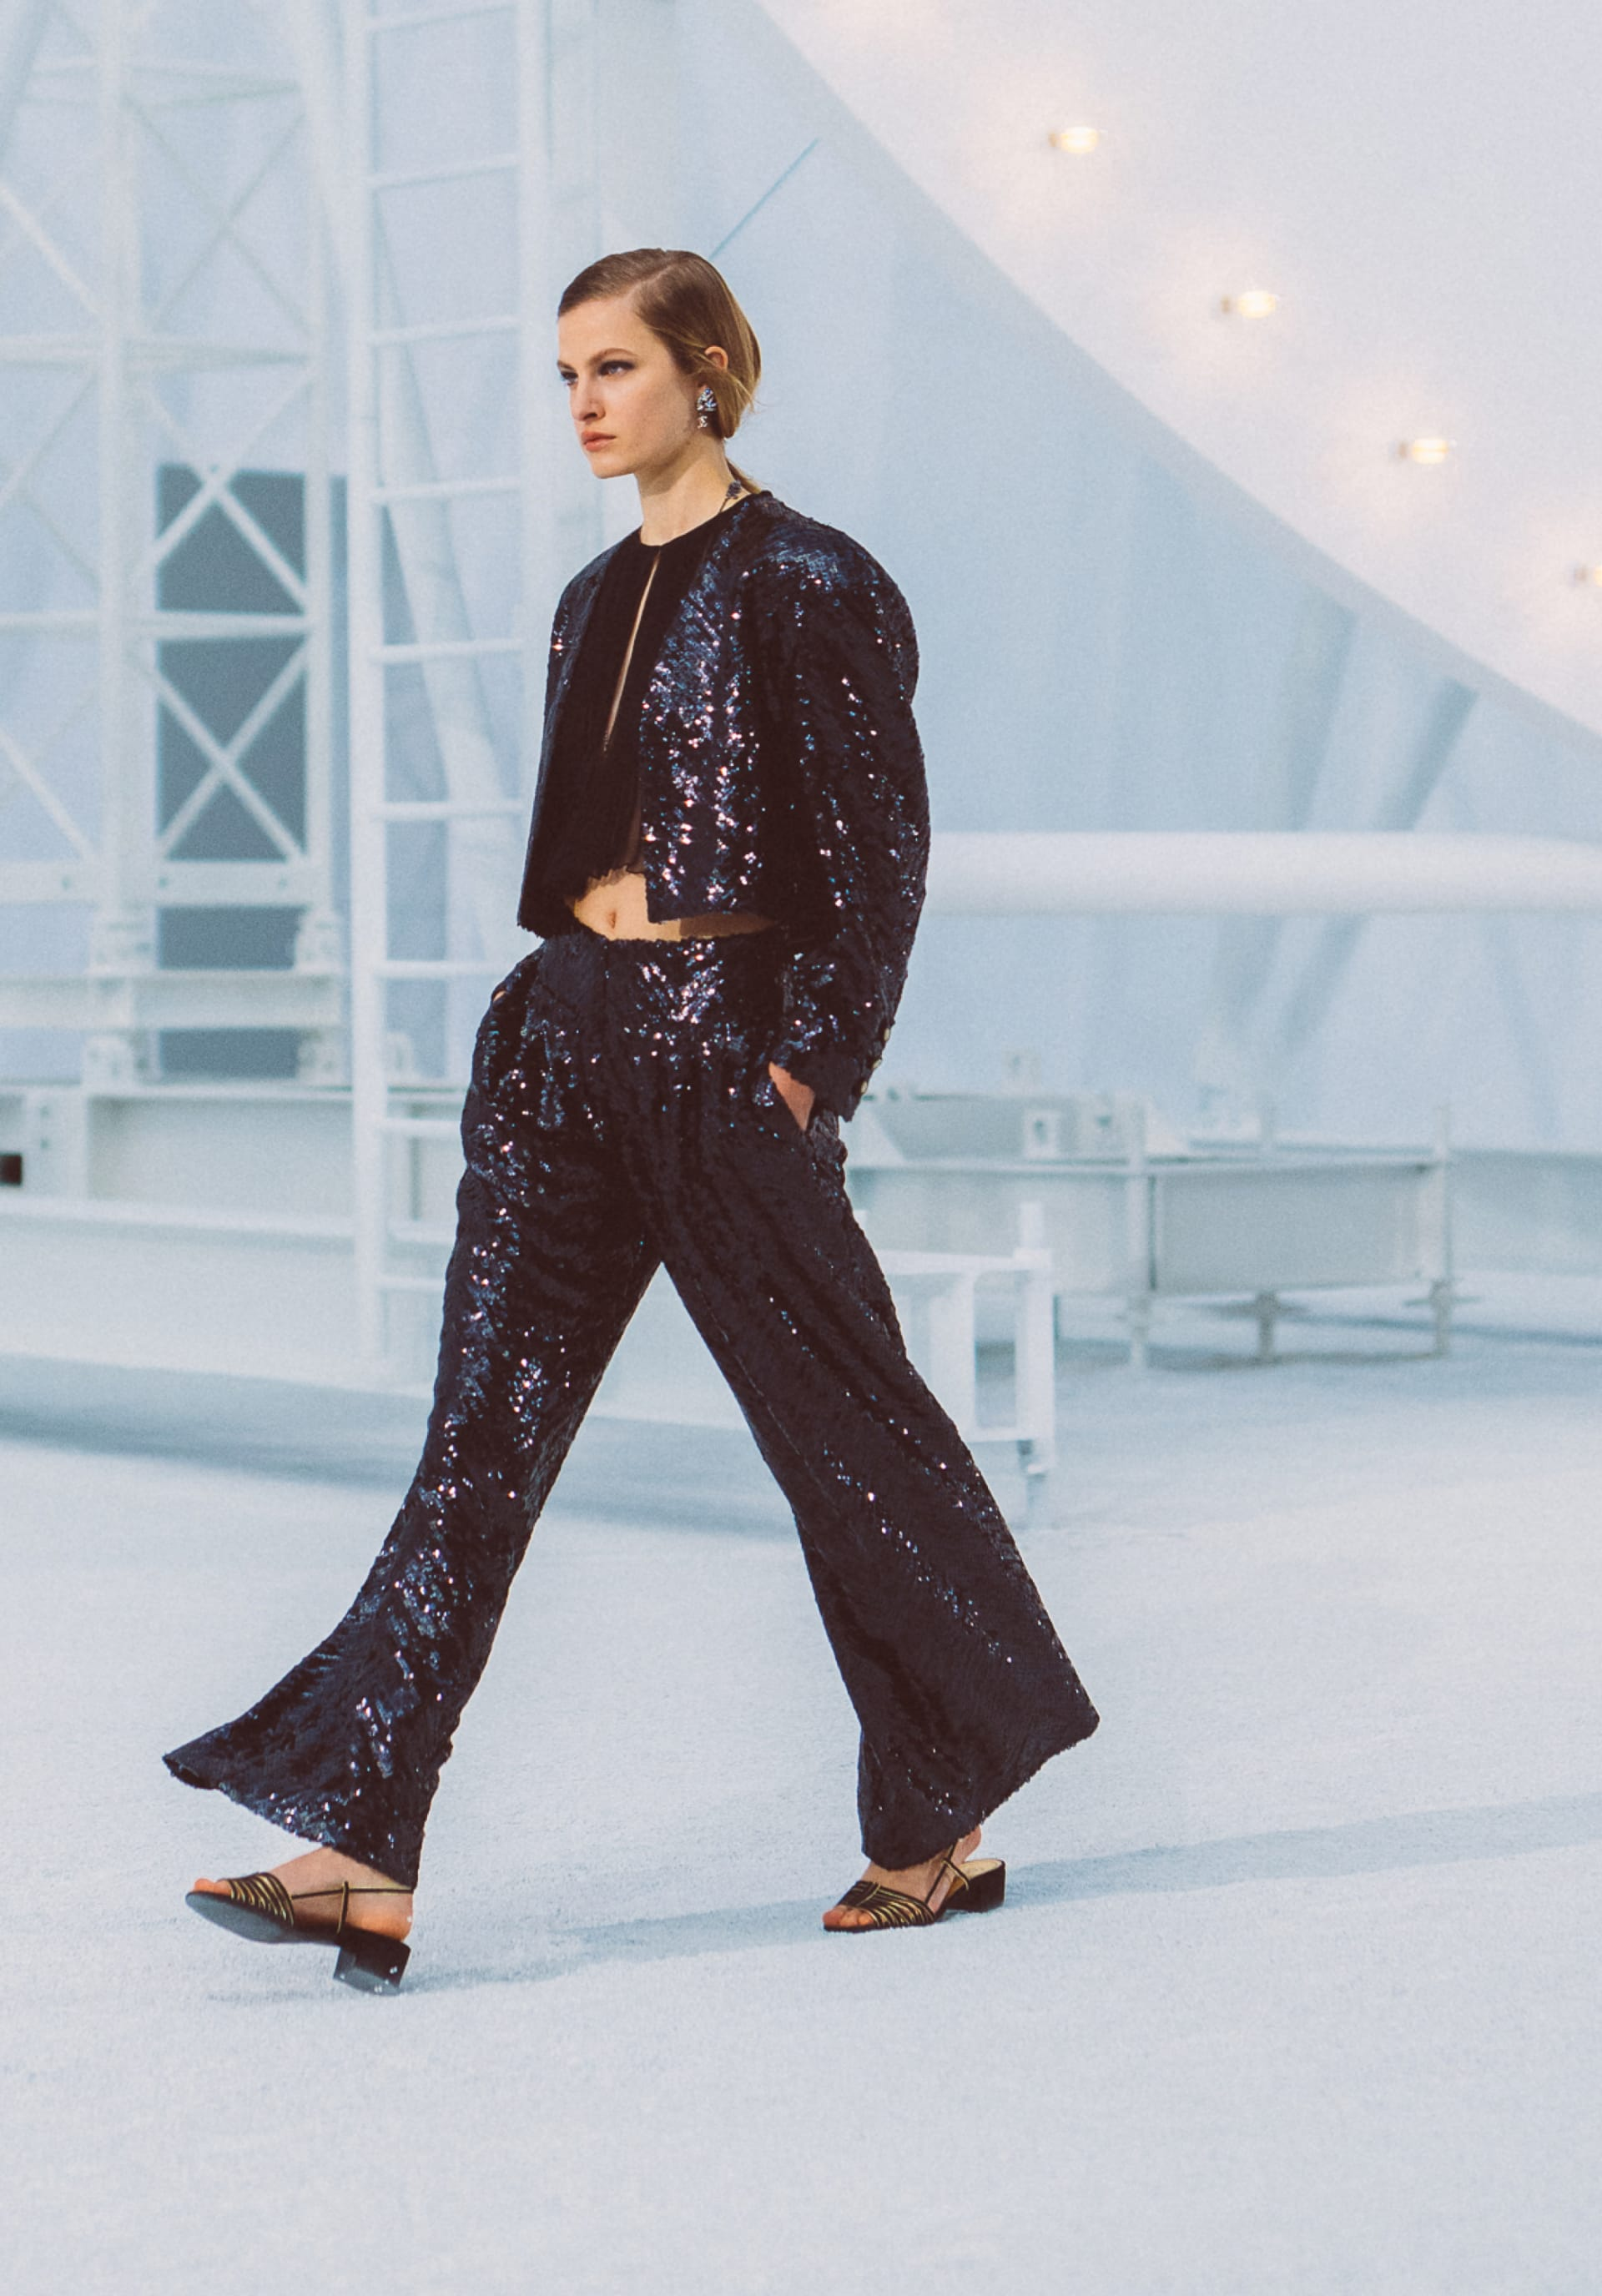 View 1 - Look64 - Spring-Summer 2021 - see full sized version